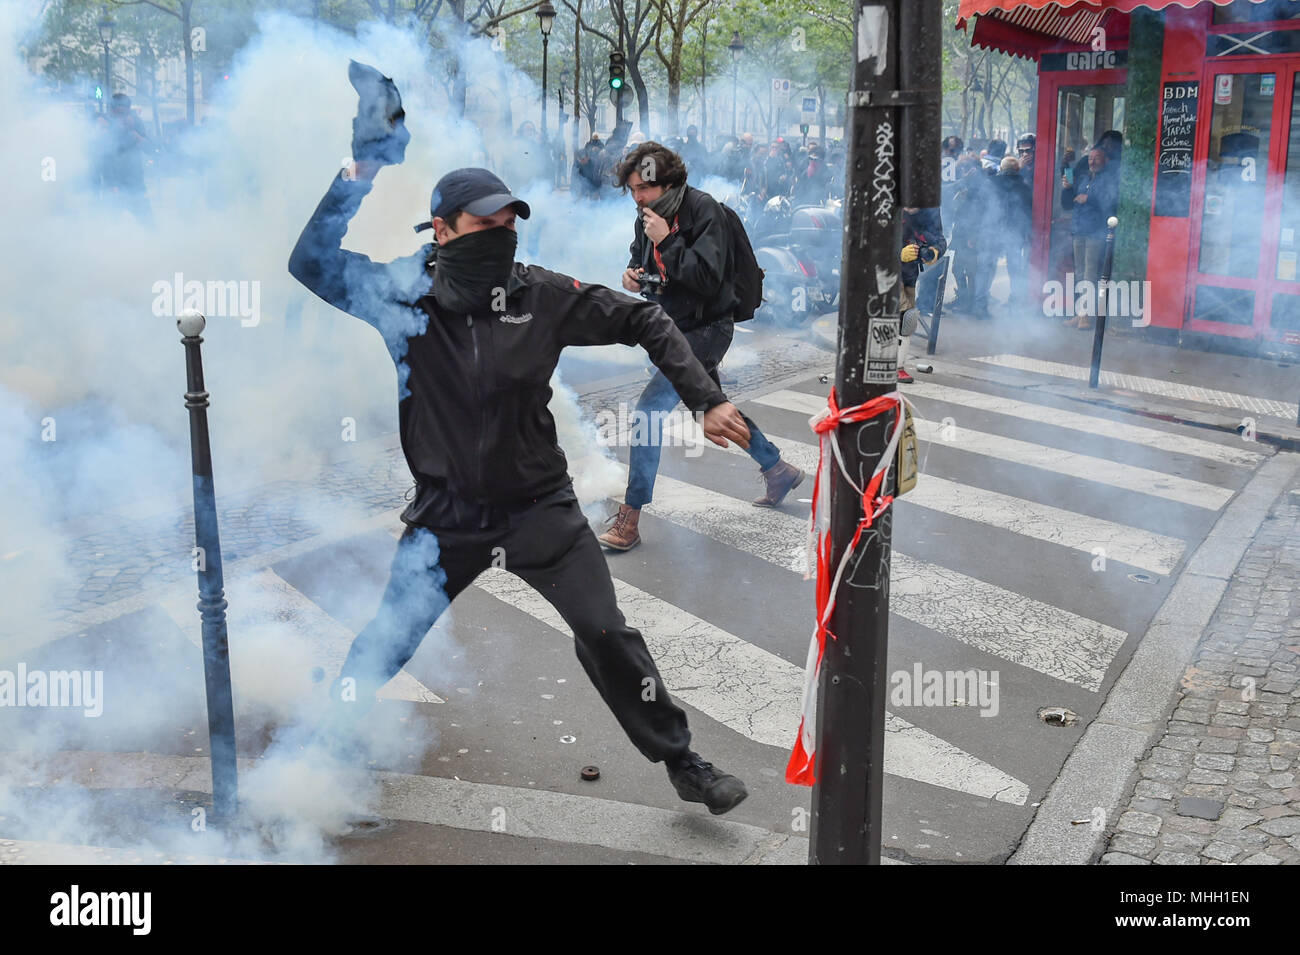 Paris, France. 1st May 2018. Paris police clash with protesters as demonstrations turn violent. PICTURED: A protester throws a tear gas canister back towards police. Credit: Peter Manning/Alamy Live News - Stock Image